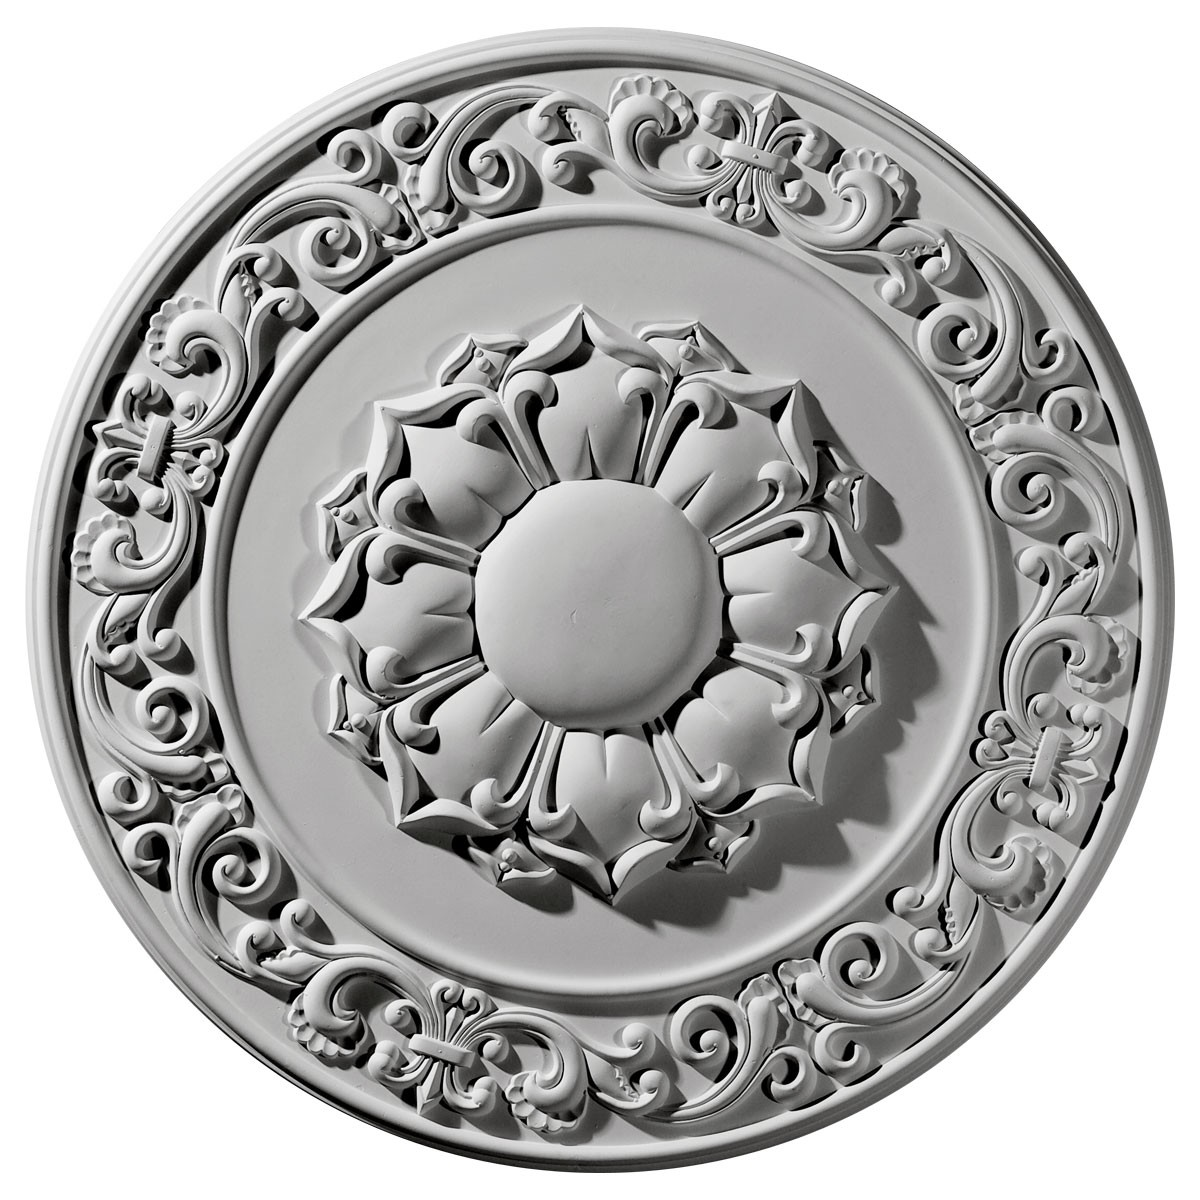 """EM-CM27SY - 27 3/4""""OD x 2""""P Sydney Ceiling Medallion (Fits Canopies up to 5 3/4"""")"""